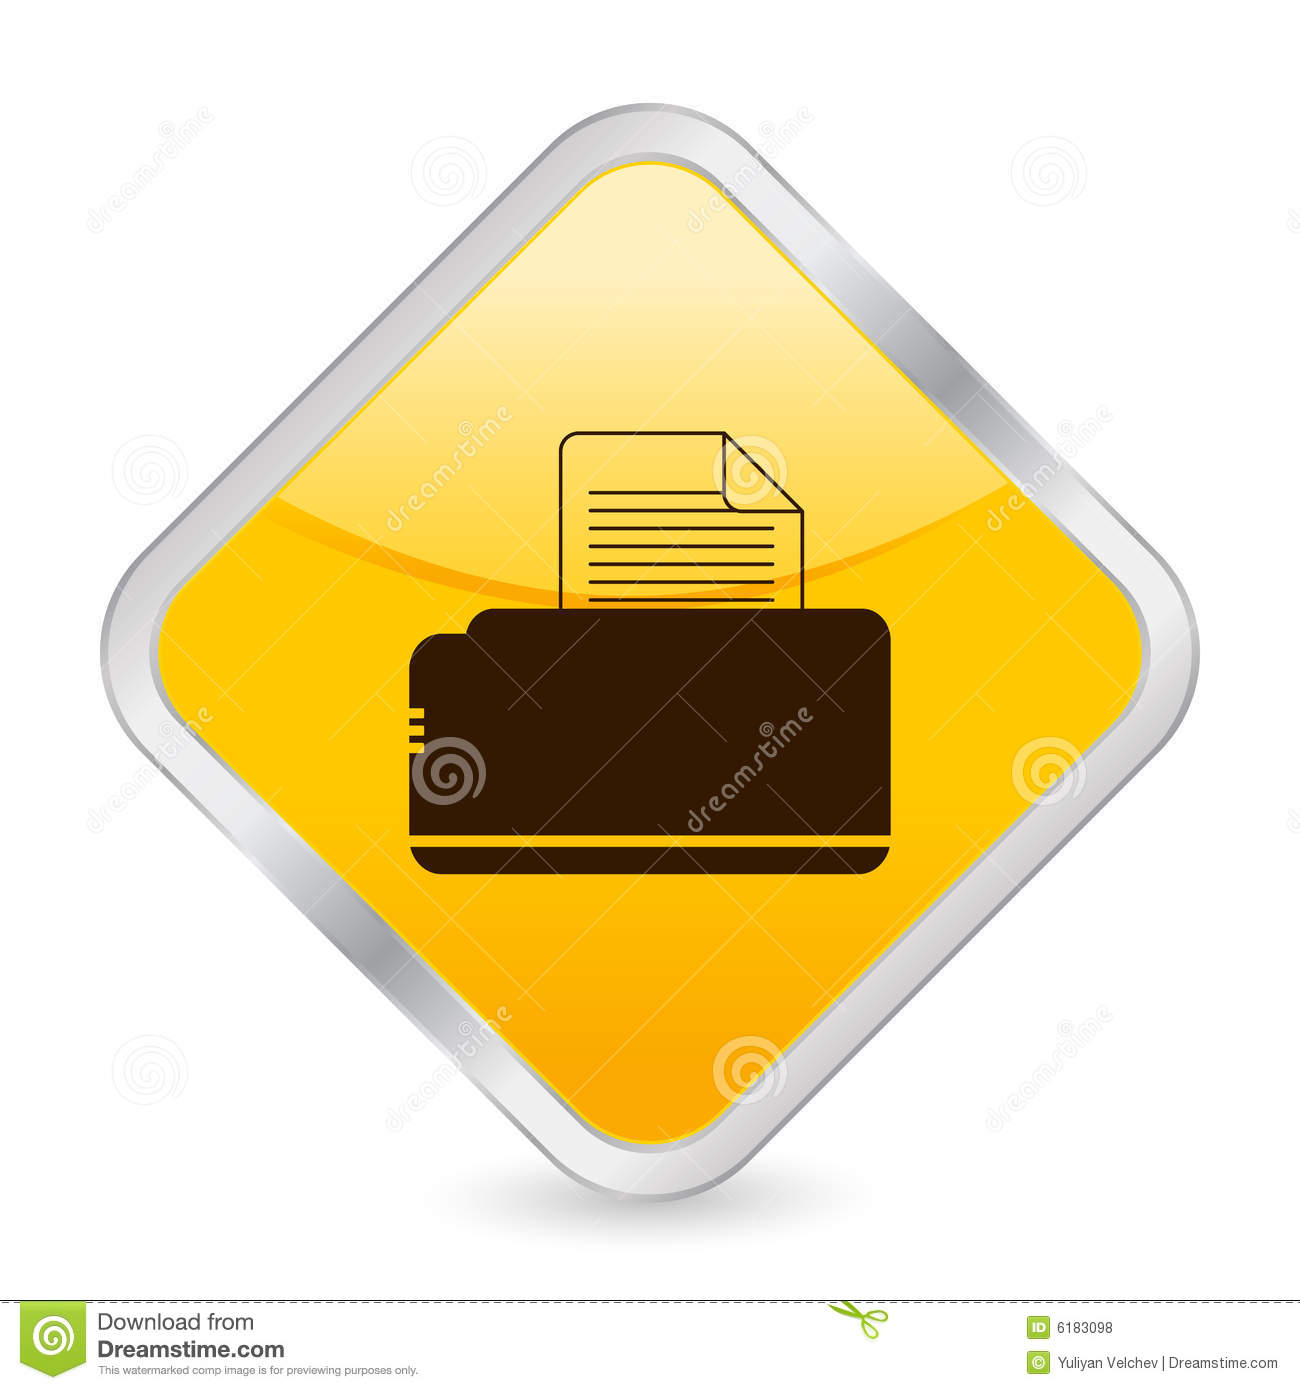 Email Icon Isolated On Special Yellow Square Button Abstract Printer Yellow Square Icon Royalty Free Stock Photos